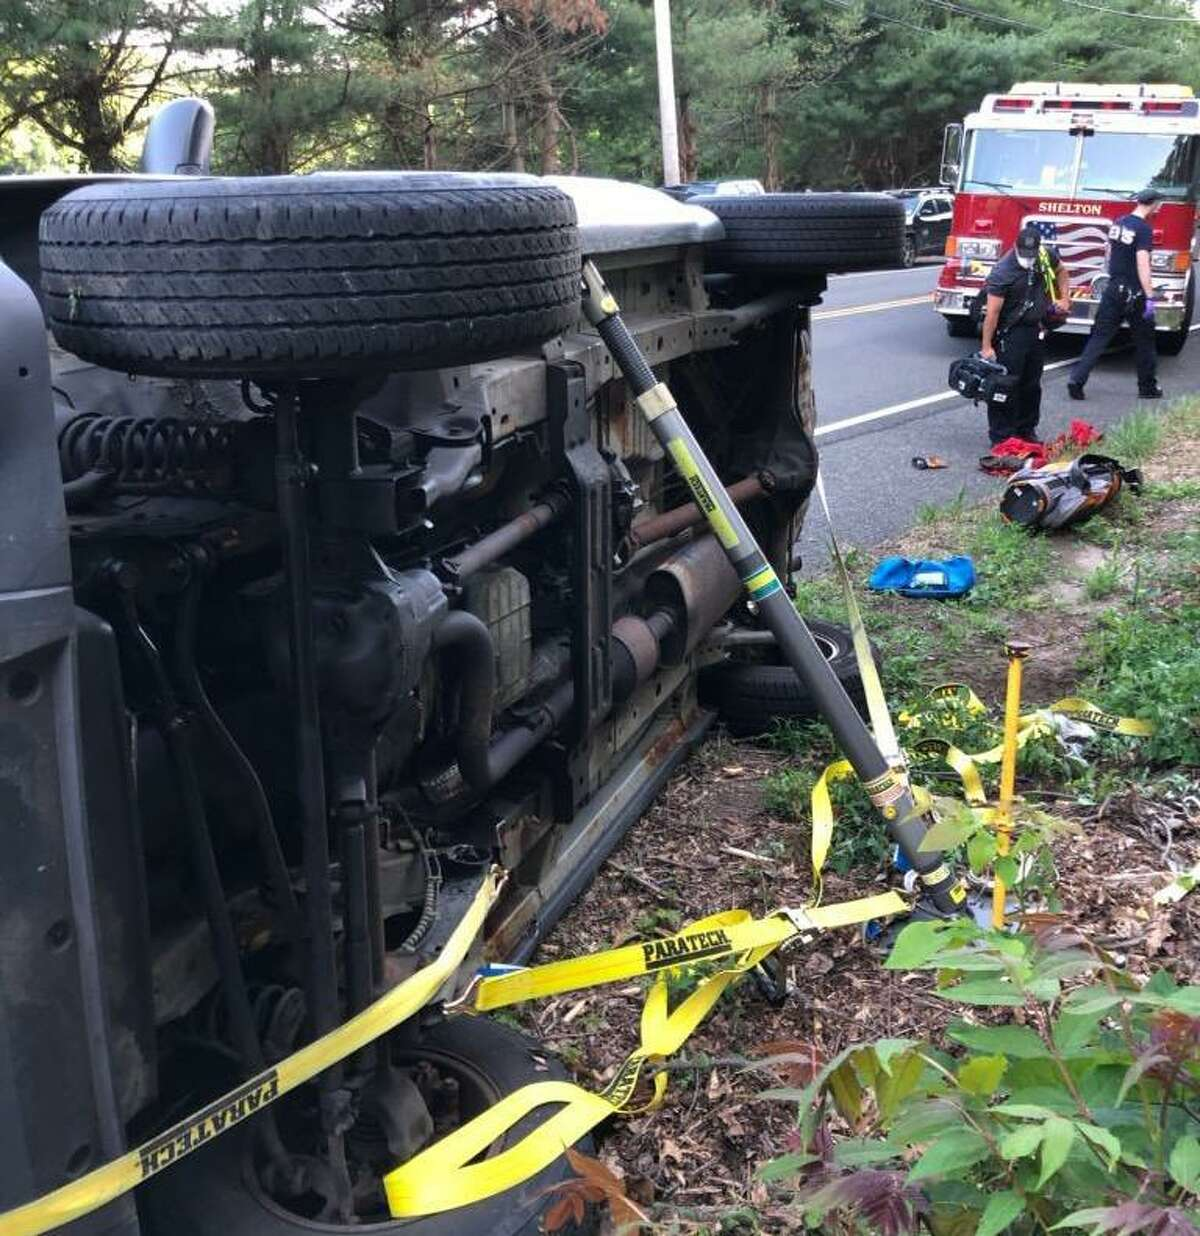 Shelton firefighters companies responded to River Road near Moulthrop Road in July on a report of a single-vehicle rollover with one occupant trapped. The road is the scene of numerous accidents, which is why the state is now installing centerline rumble strips.